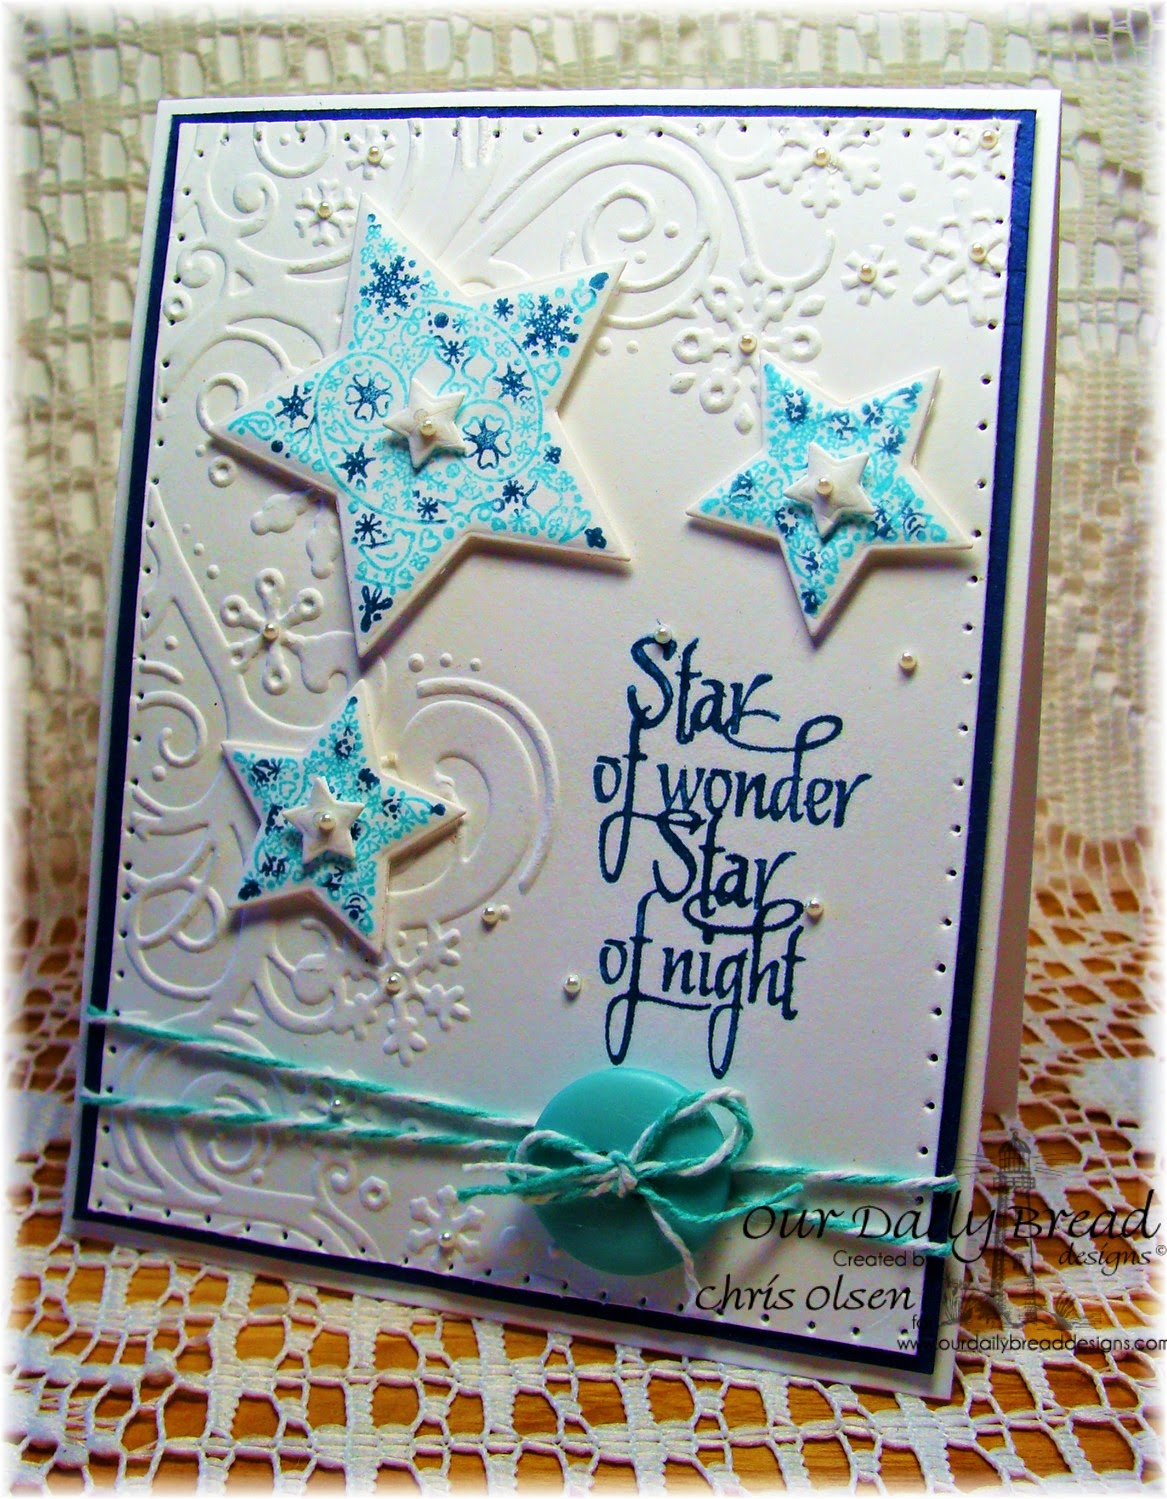 Our Daily Bread Designs, Snowflake Stars, His Birth, Sparkling Stars, designer-Chris Olsen